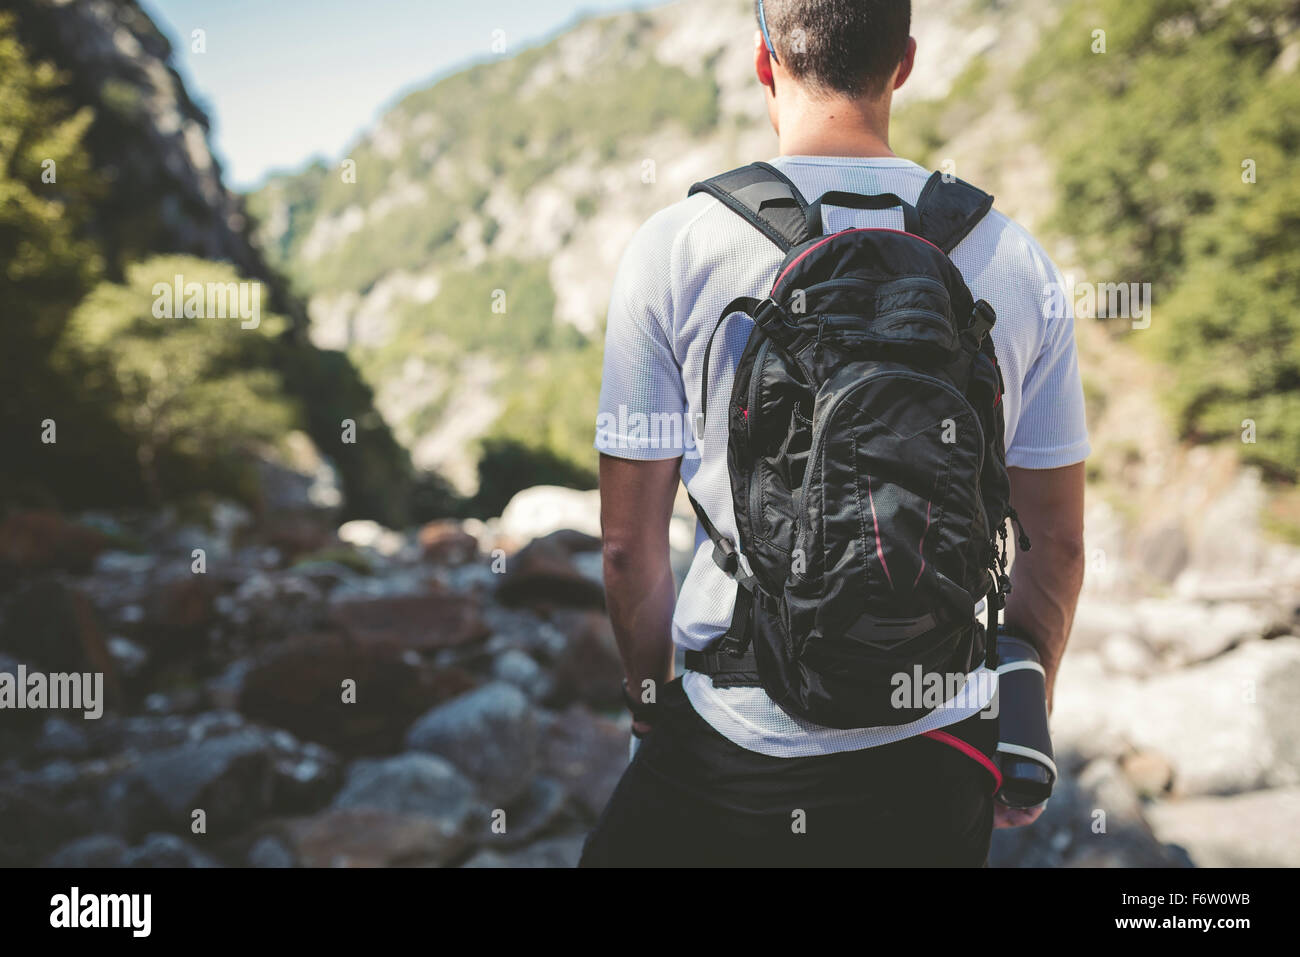 Ultra runner in mountains carrying backpack, looking at view - Stock Image